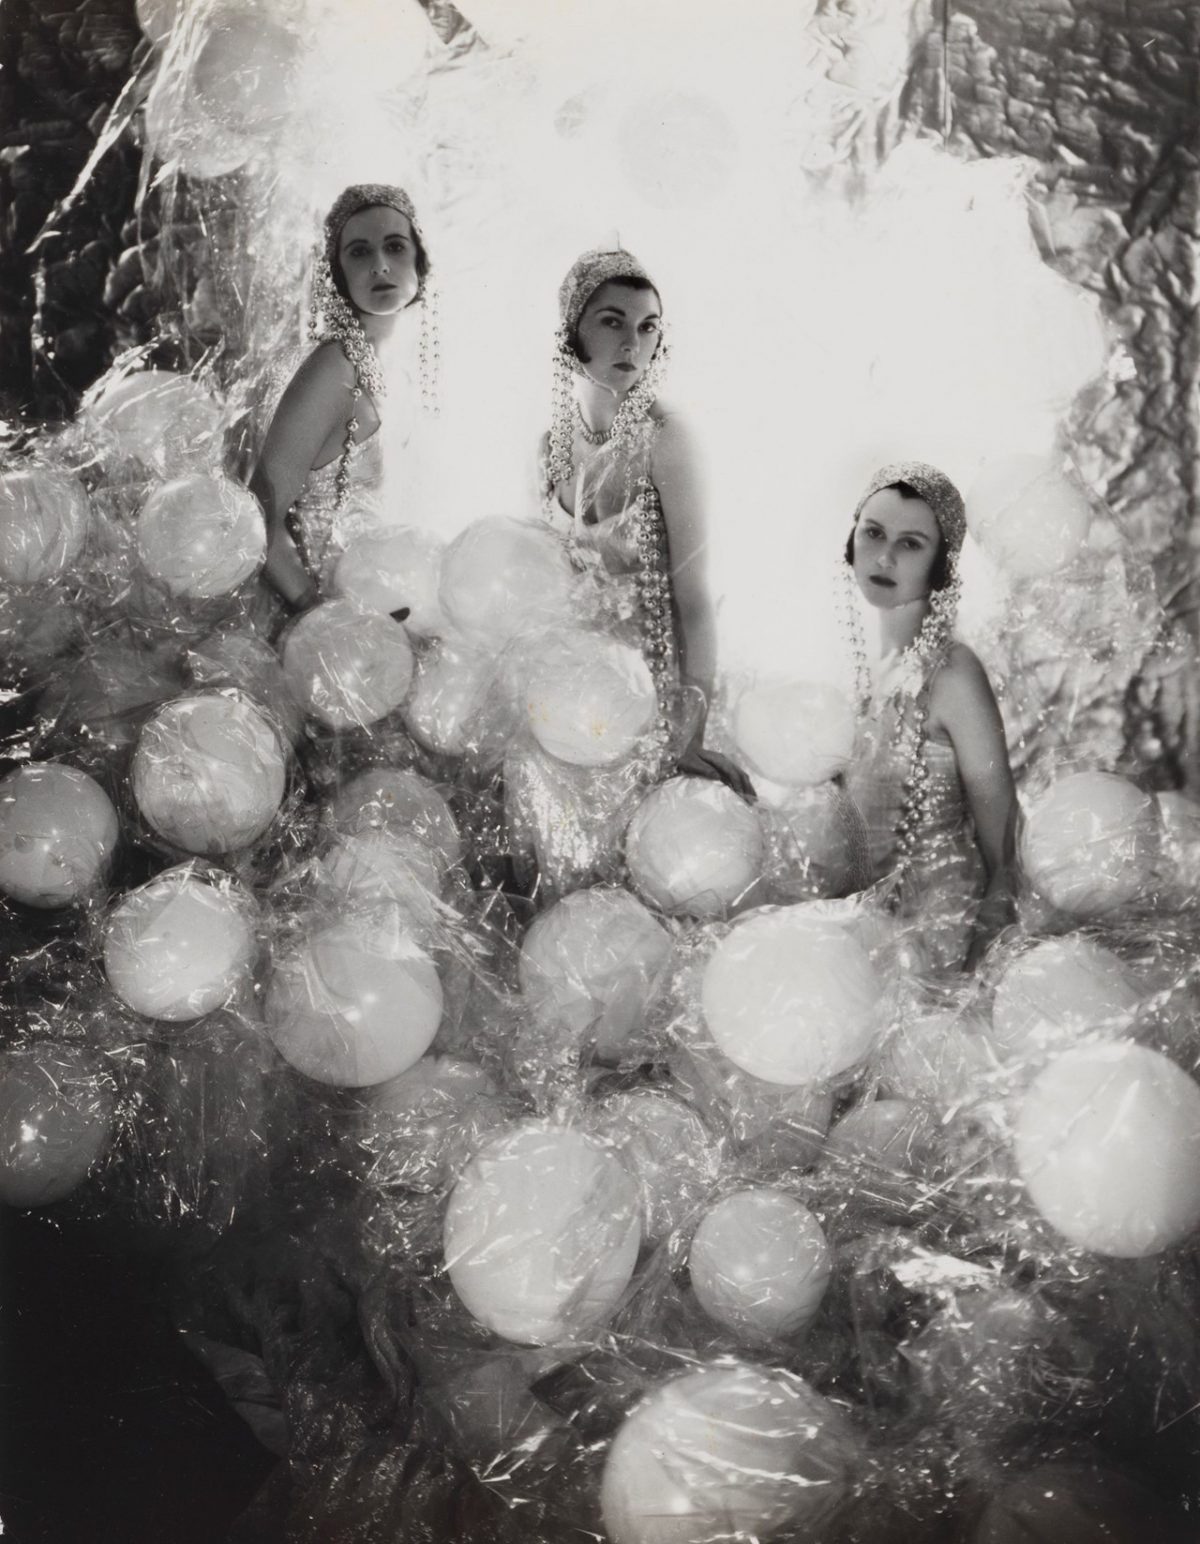 The Silver Soap Suds (L to R: Baba Beaton, the Hon. Mrs Charles Baillie-Hamilton and Lady Bridget Poulett), 1930